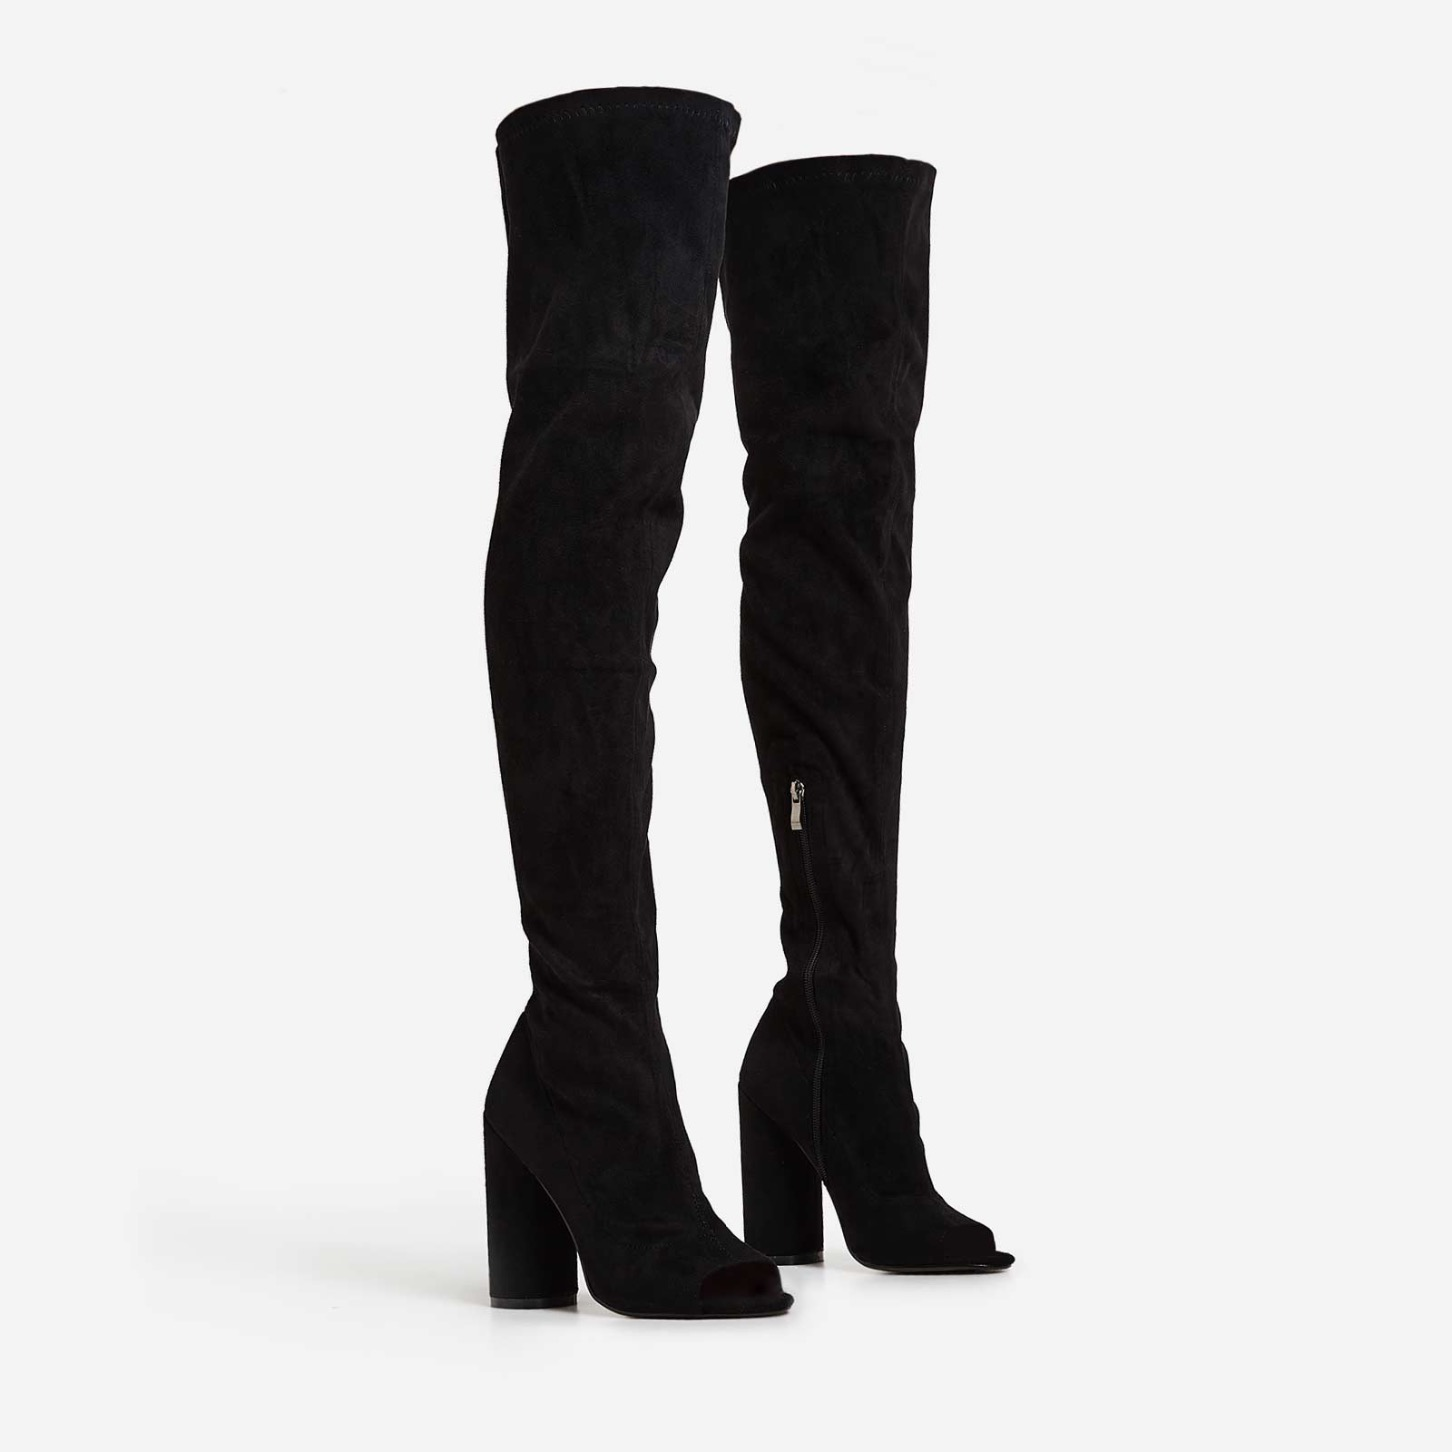 Cindy Thigh High Peep Toe Boots In Black Lycra Image 1